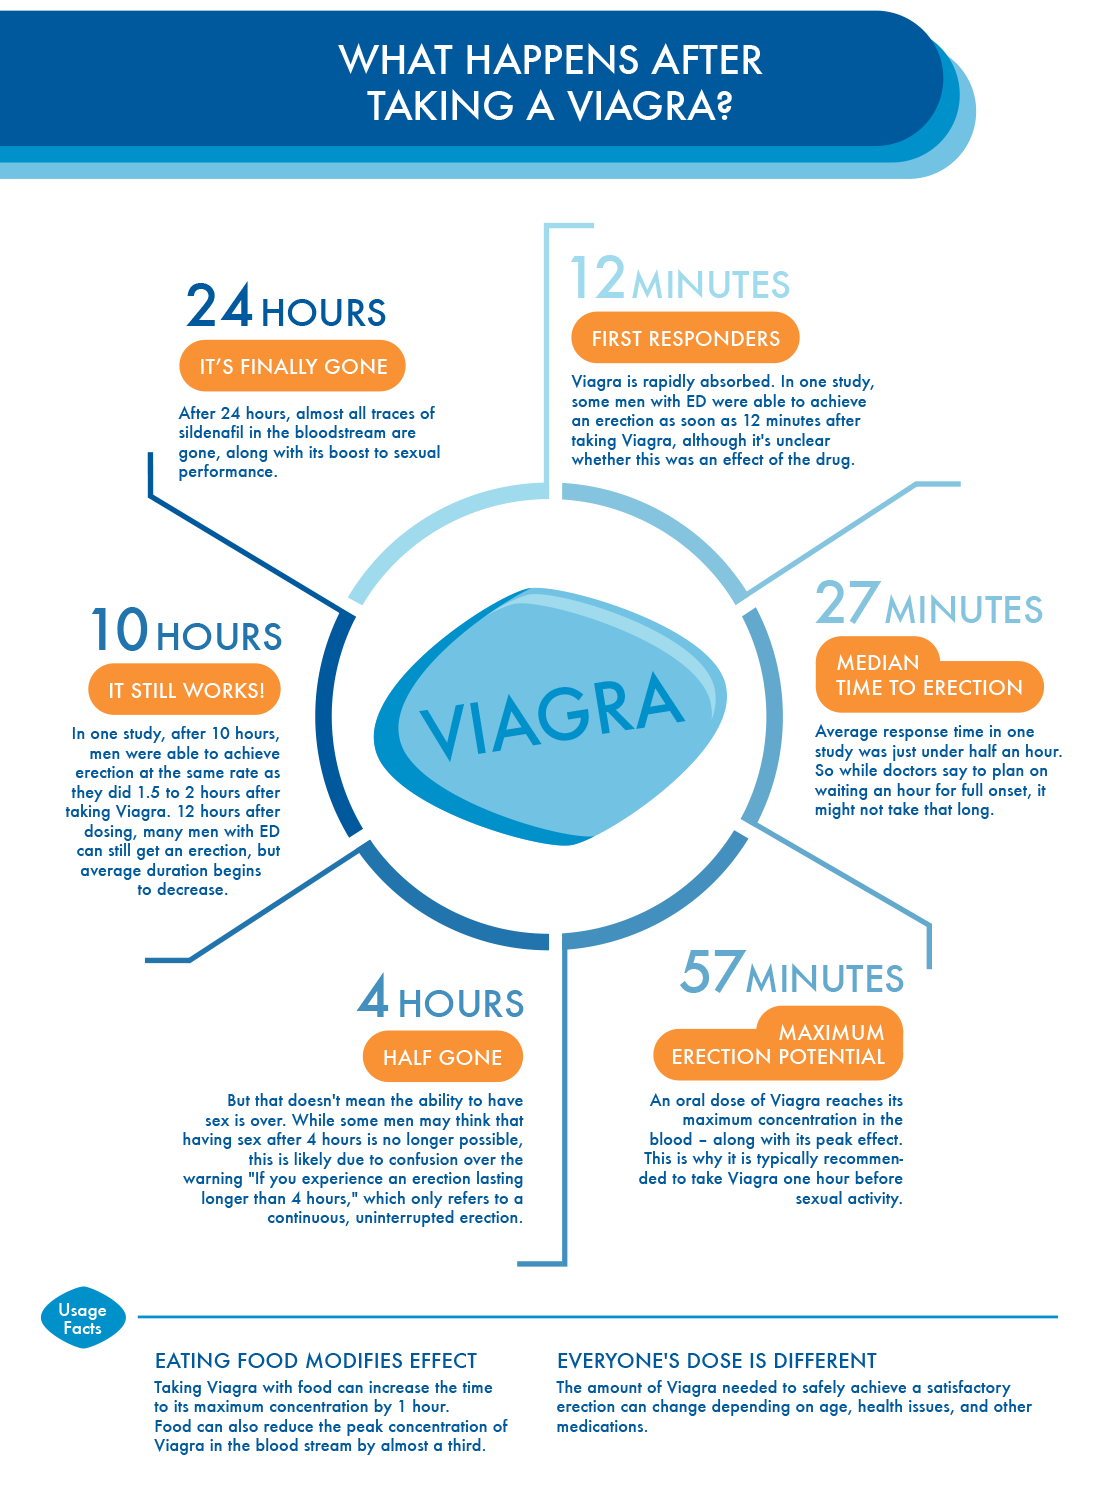 Viagra effects on healthy men